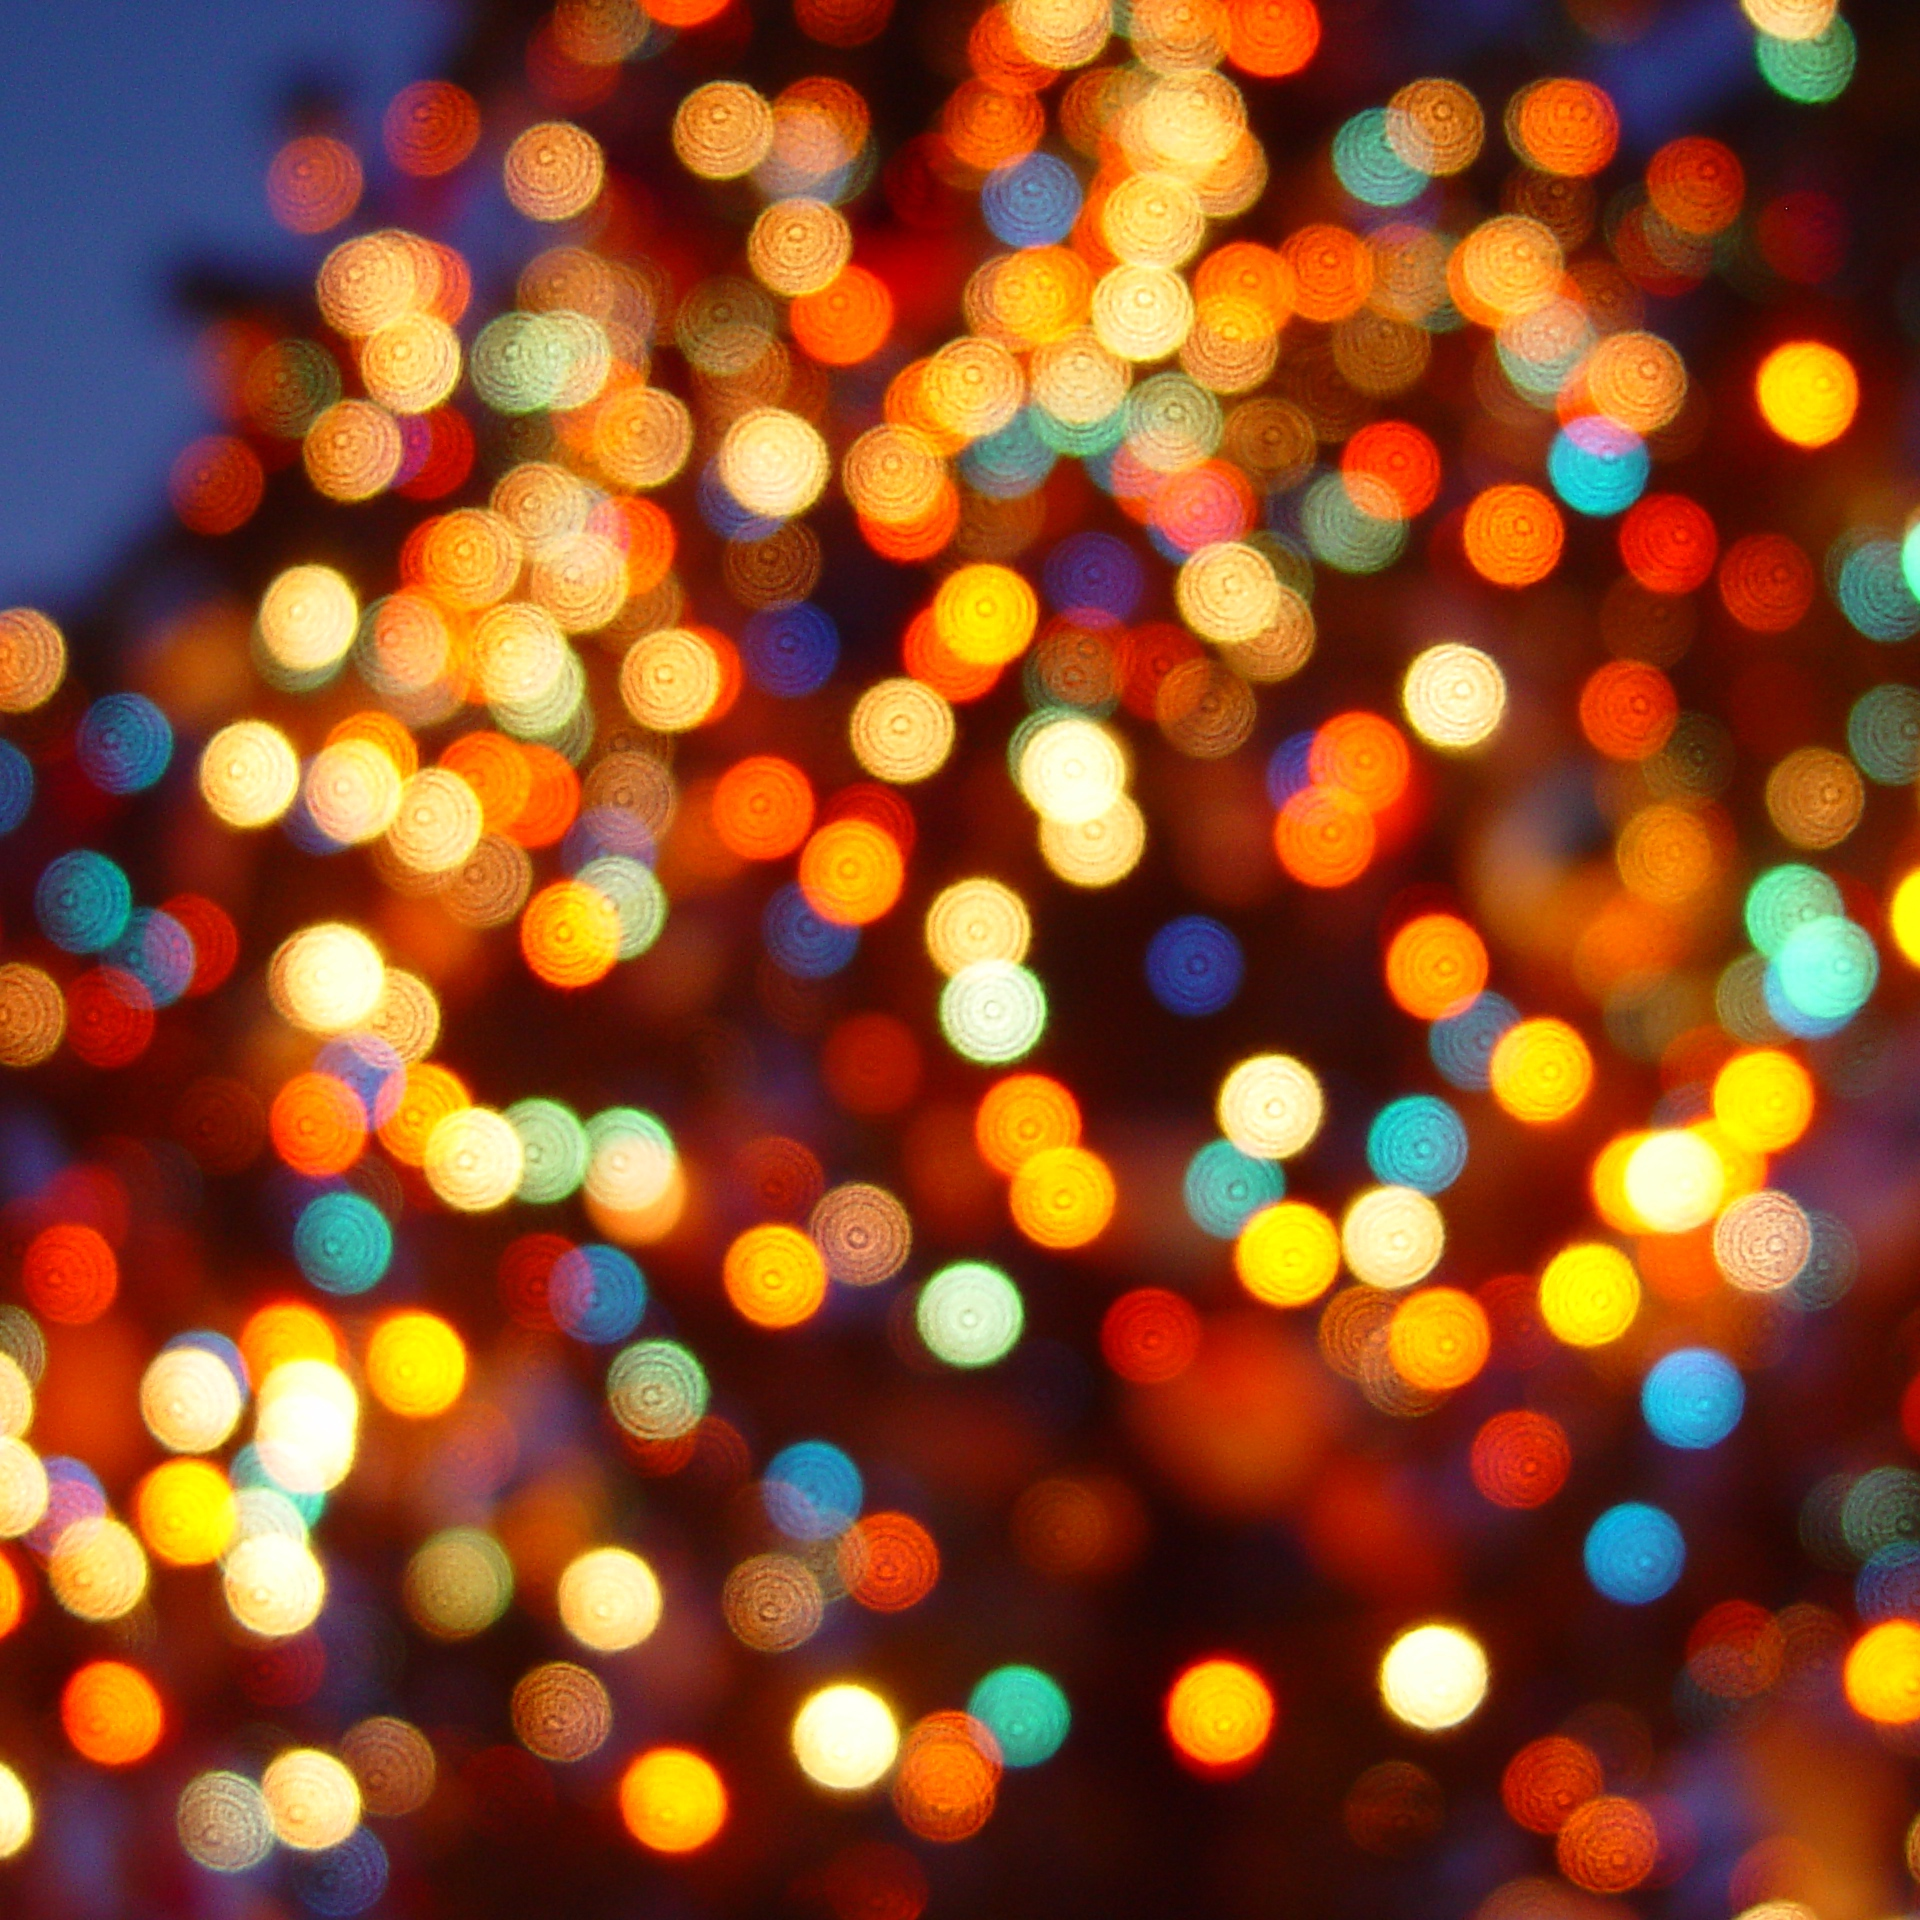 35 classic christmas songs music playlists - Classic Christmas Songs